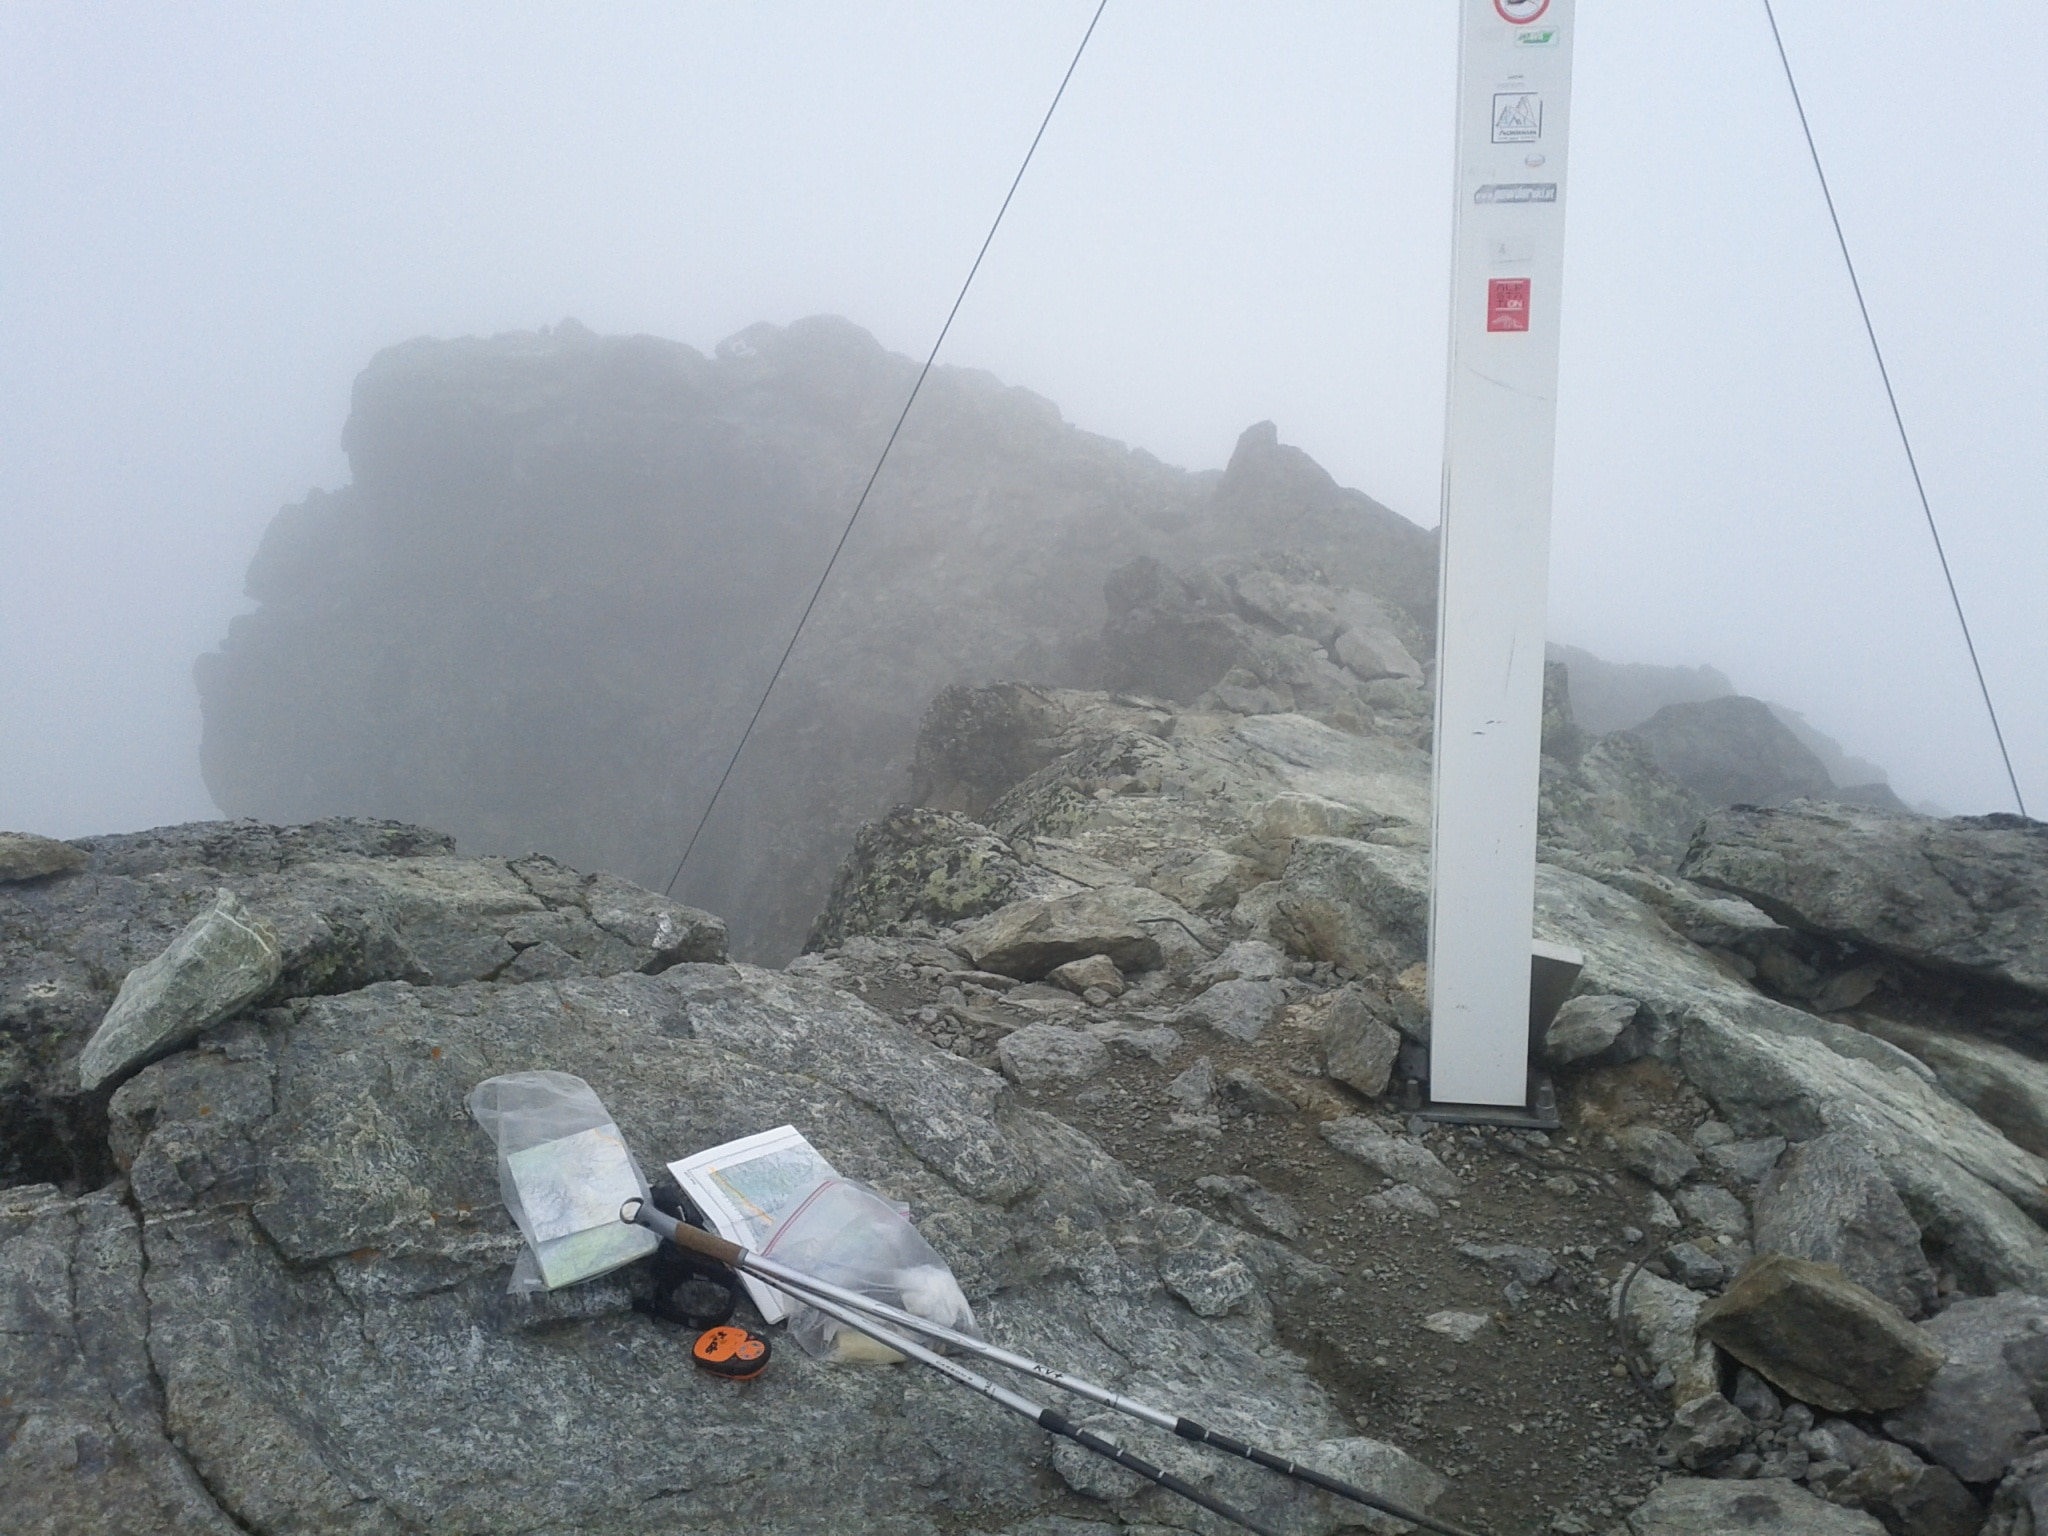 The summit cross of Sesvenna. It's for views like these that we climb mountains!